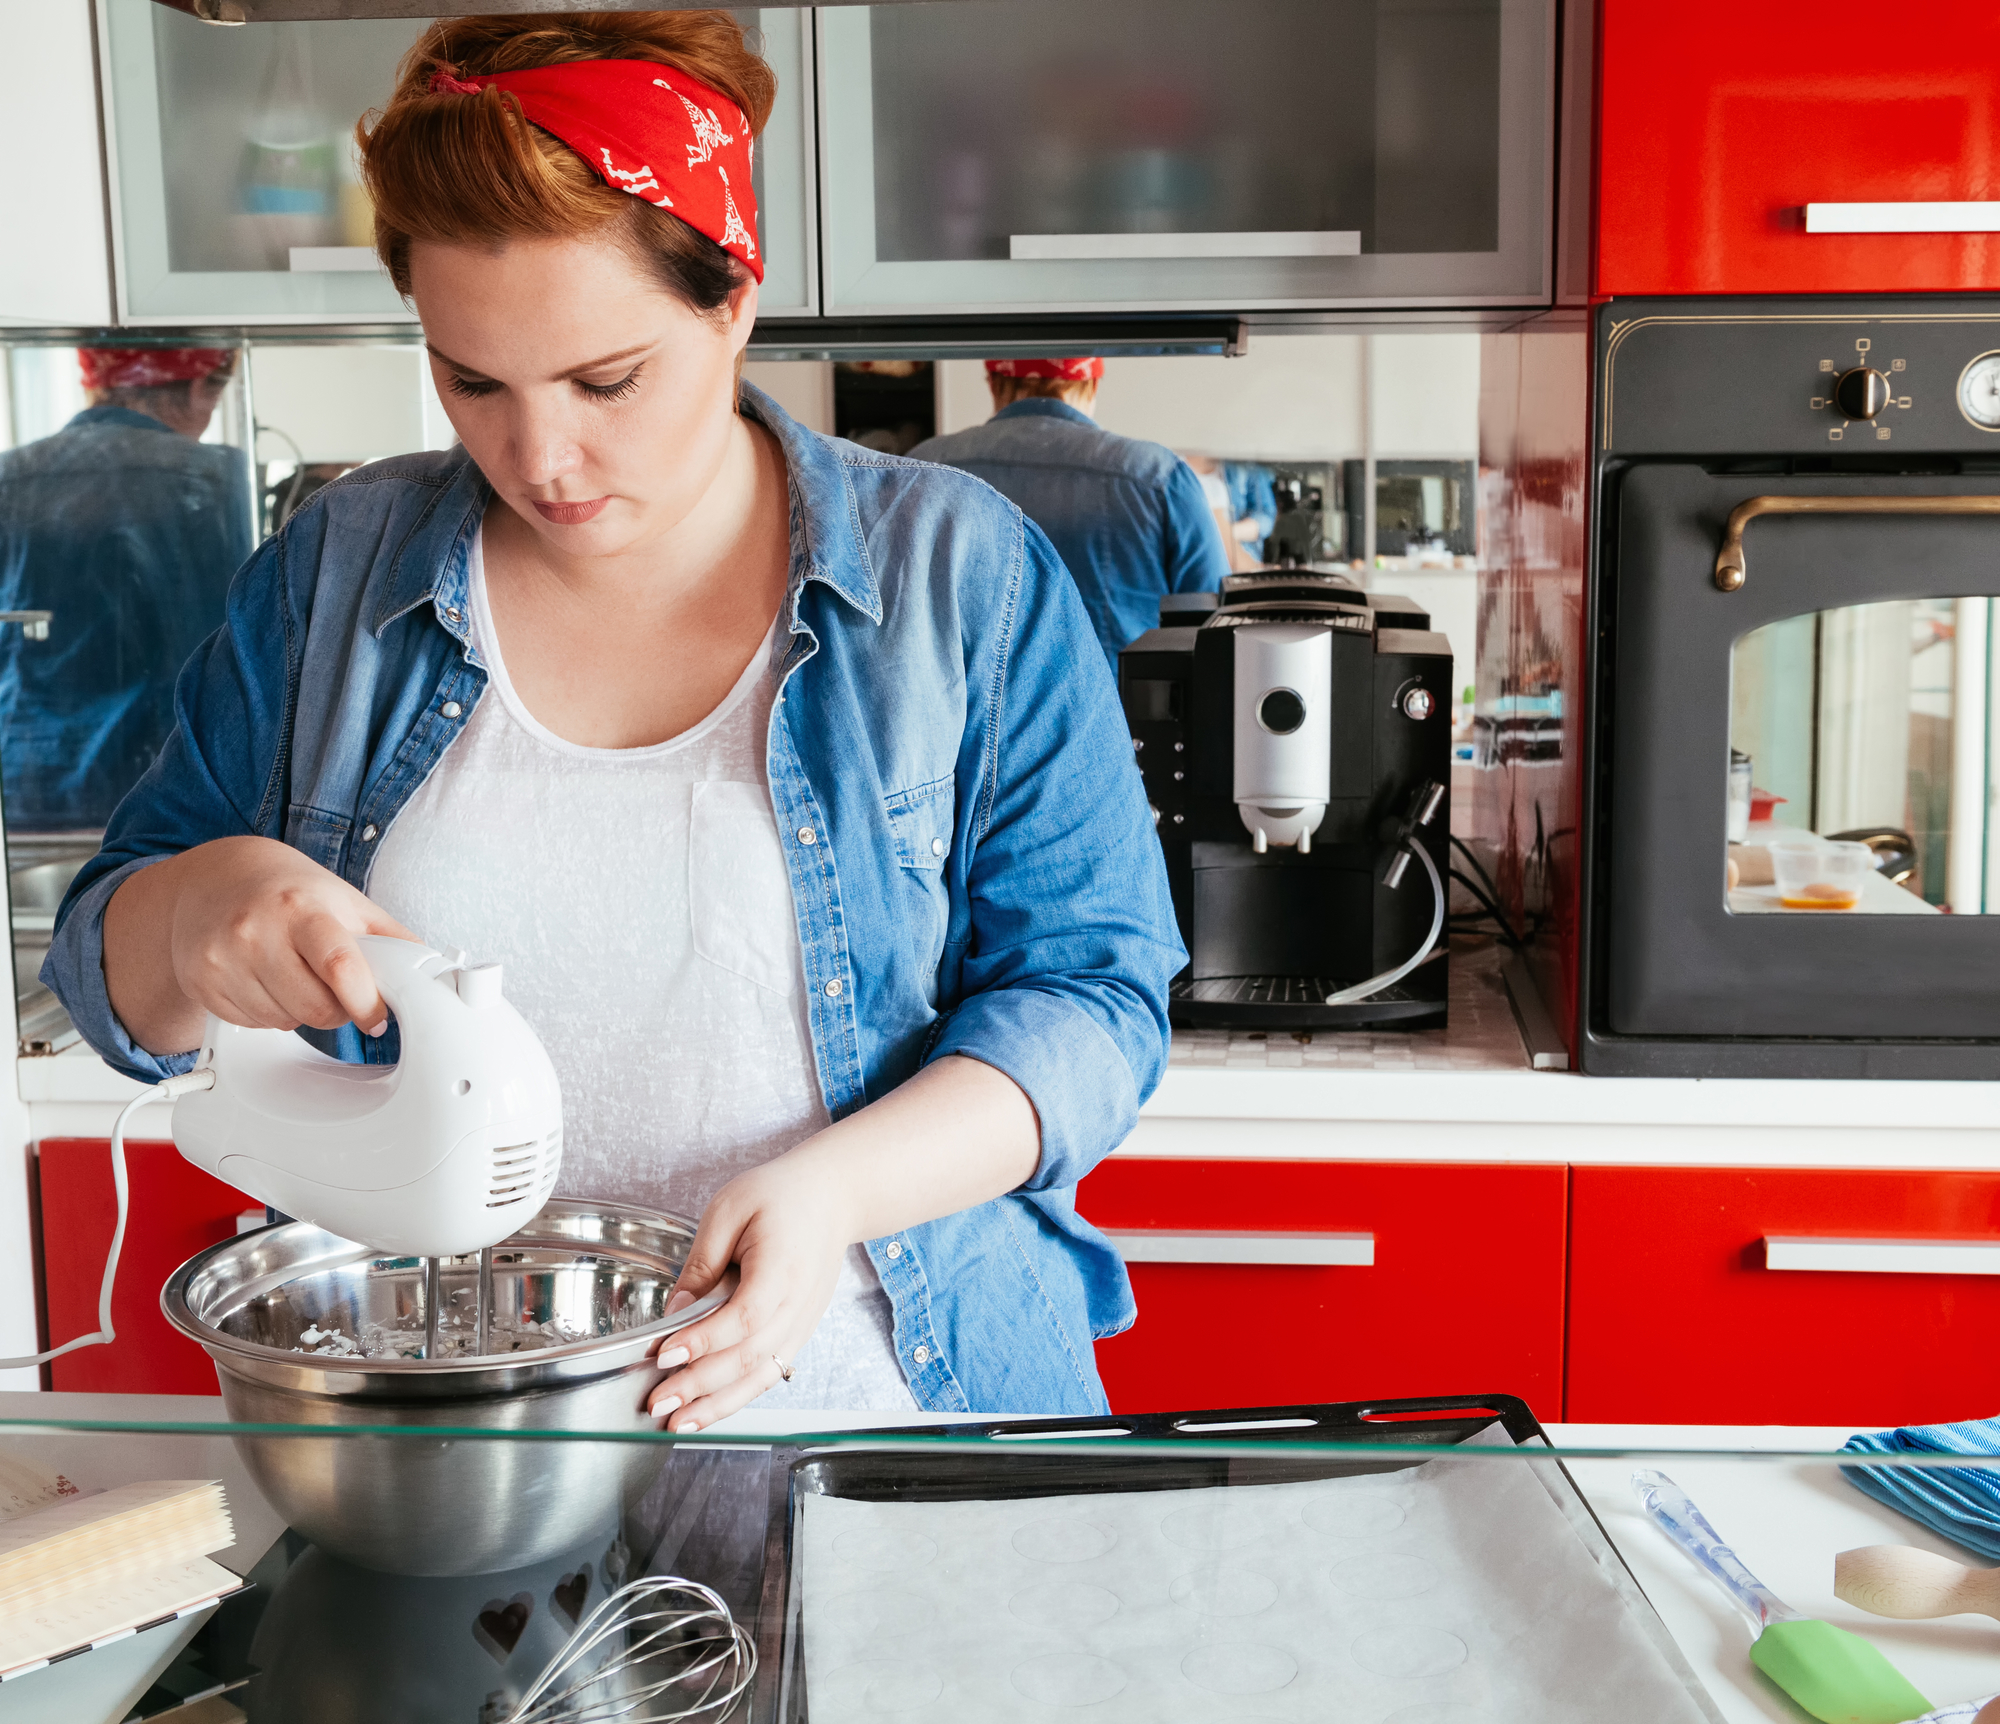 A white woman wearing a red bandana uses a hand mixer to make whipped cream